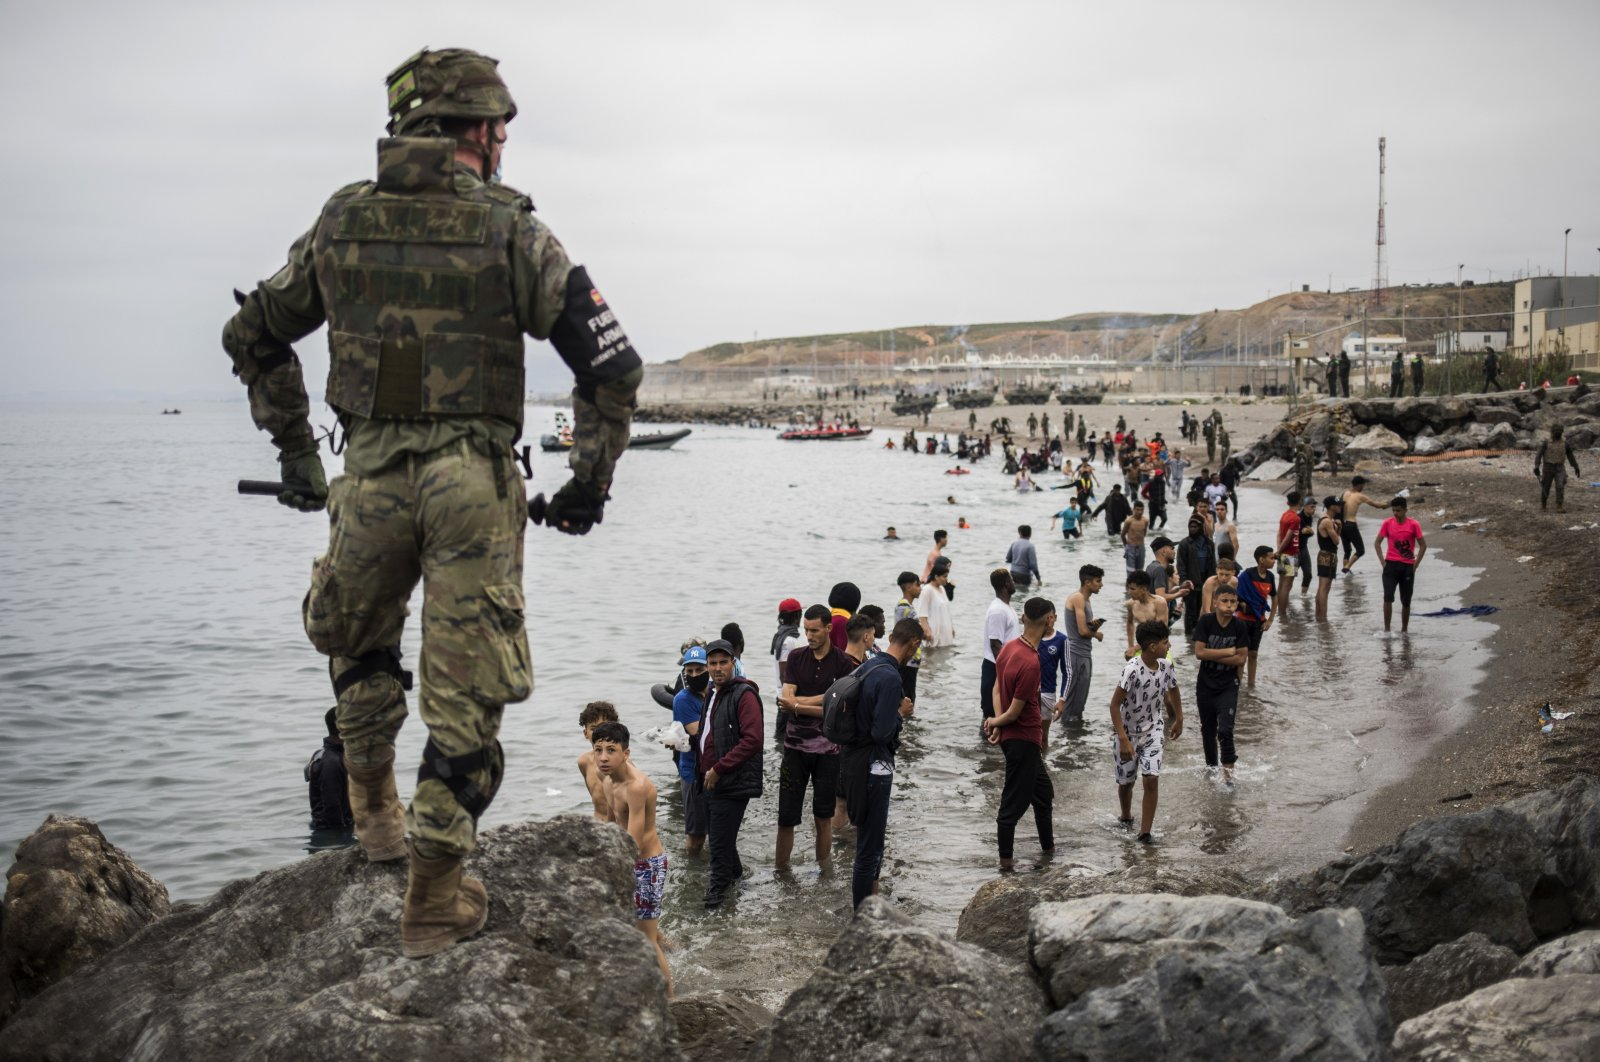 People mainly from Morocco stand on the shore as Spanish Army cordon off the area at the border of Morocco and Spain, at the Spanish enclave of Ceuta, on Tuesday, May 18, 2021. (AP Photo)